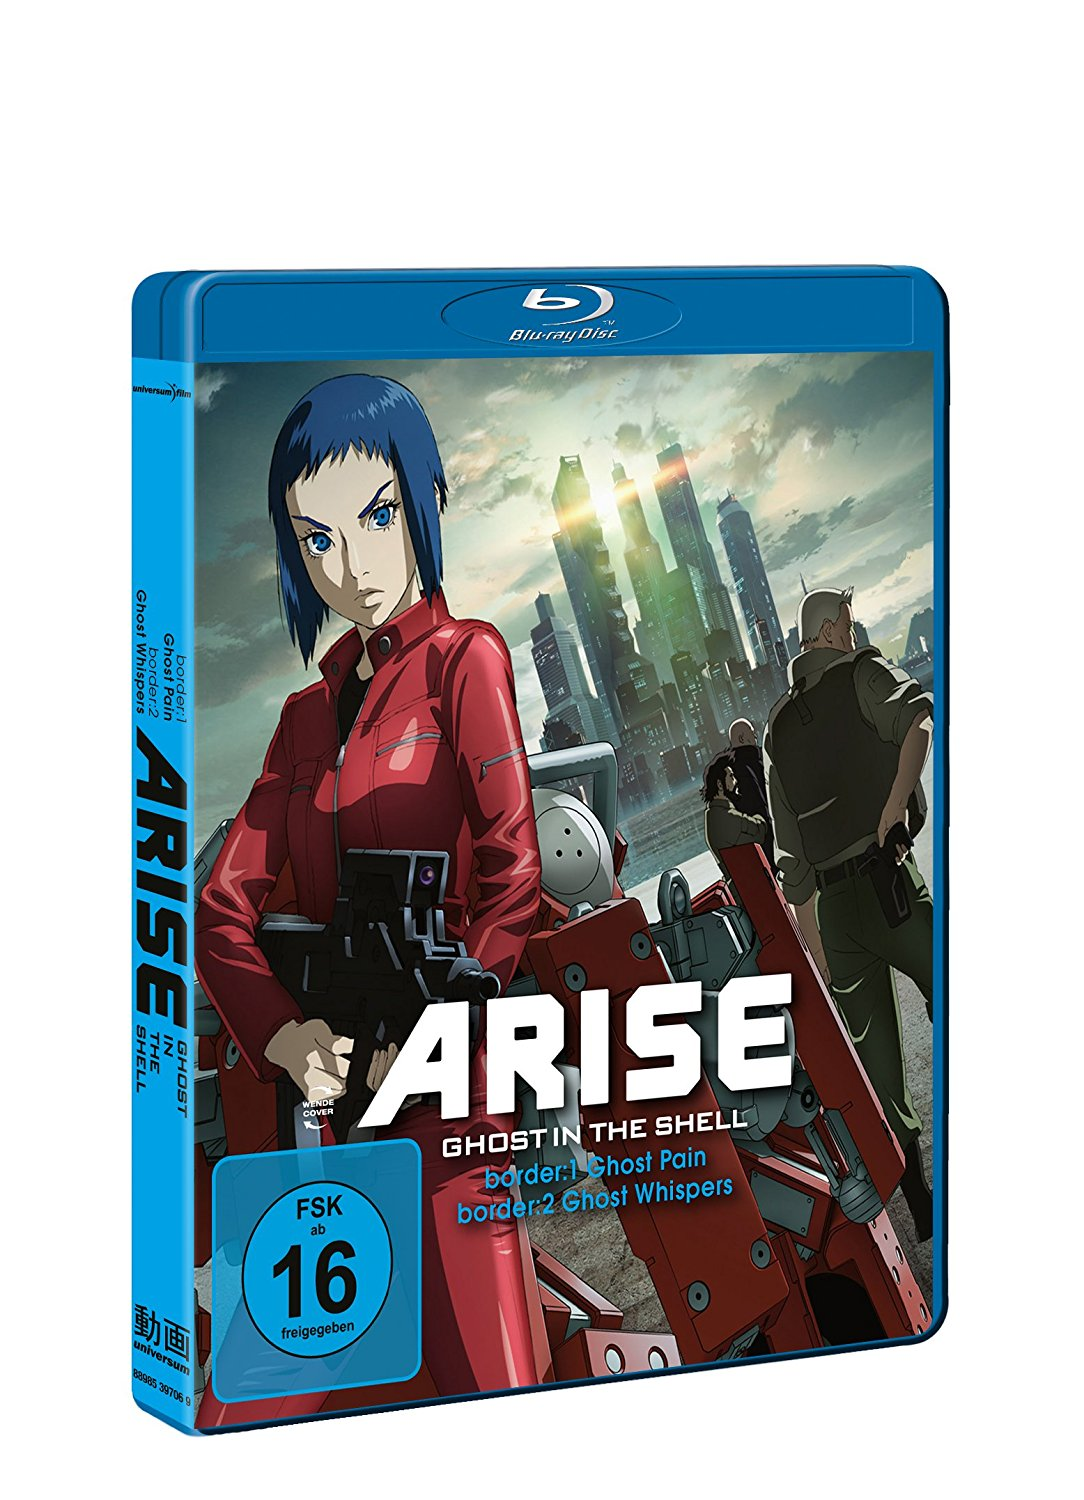 Ghost-in-the-Shell-Arise-OVA-Anime